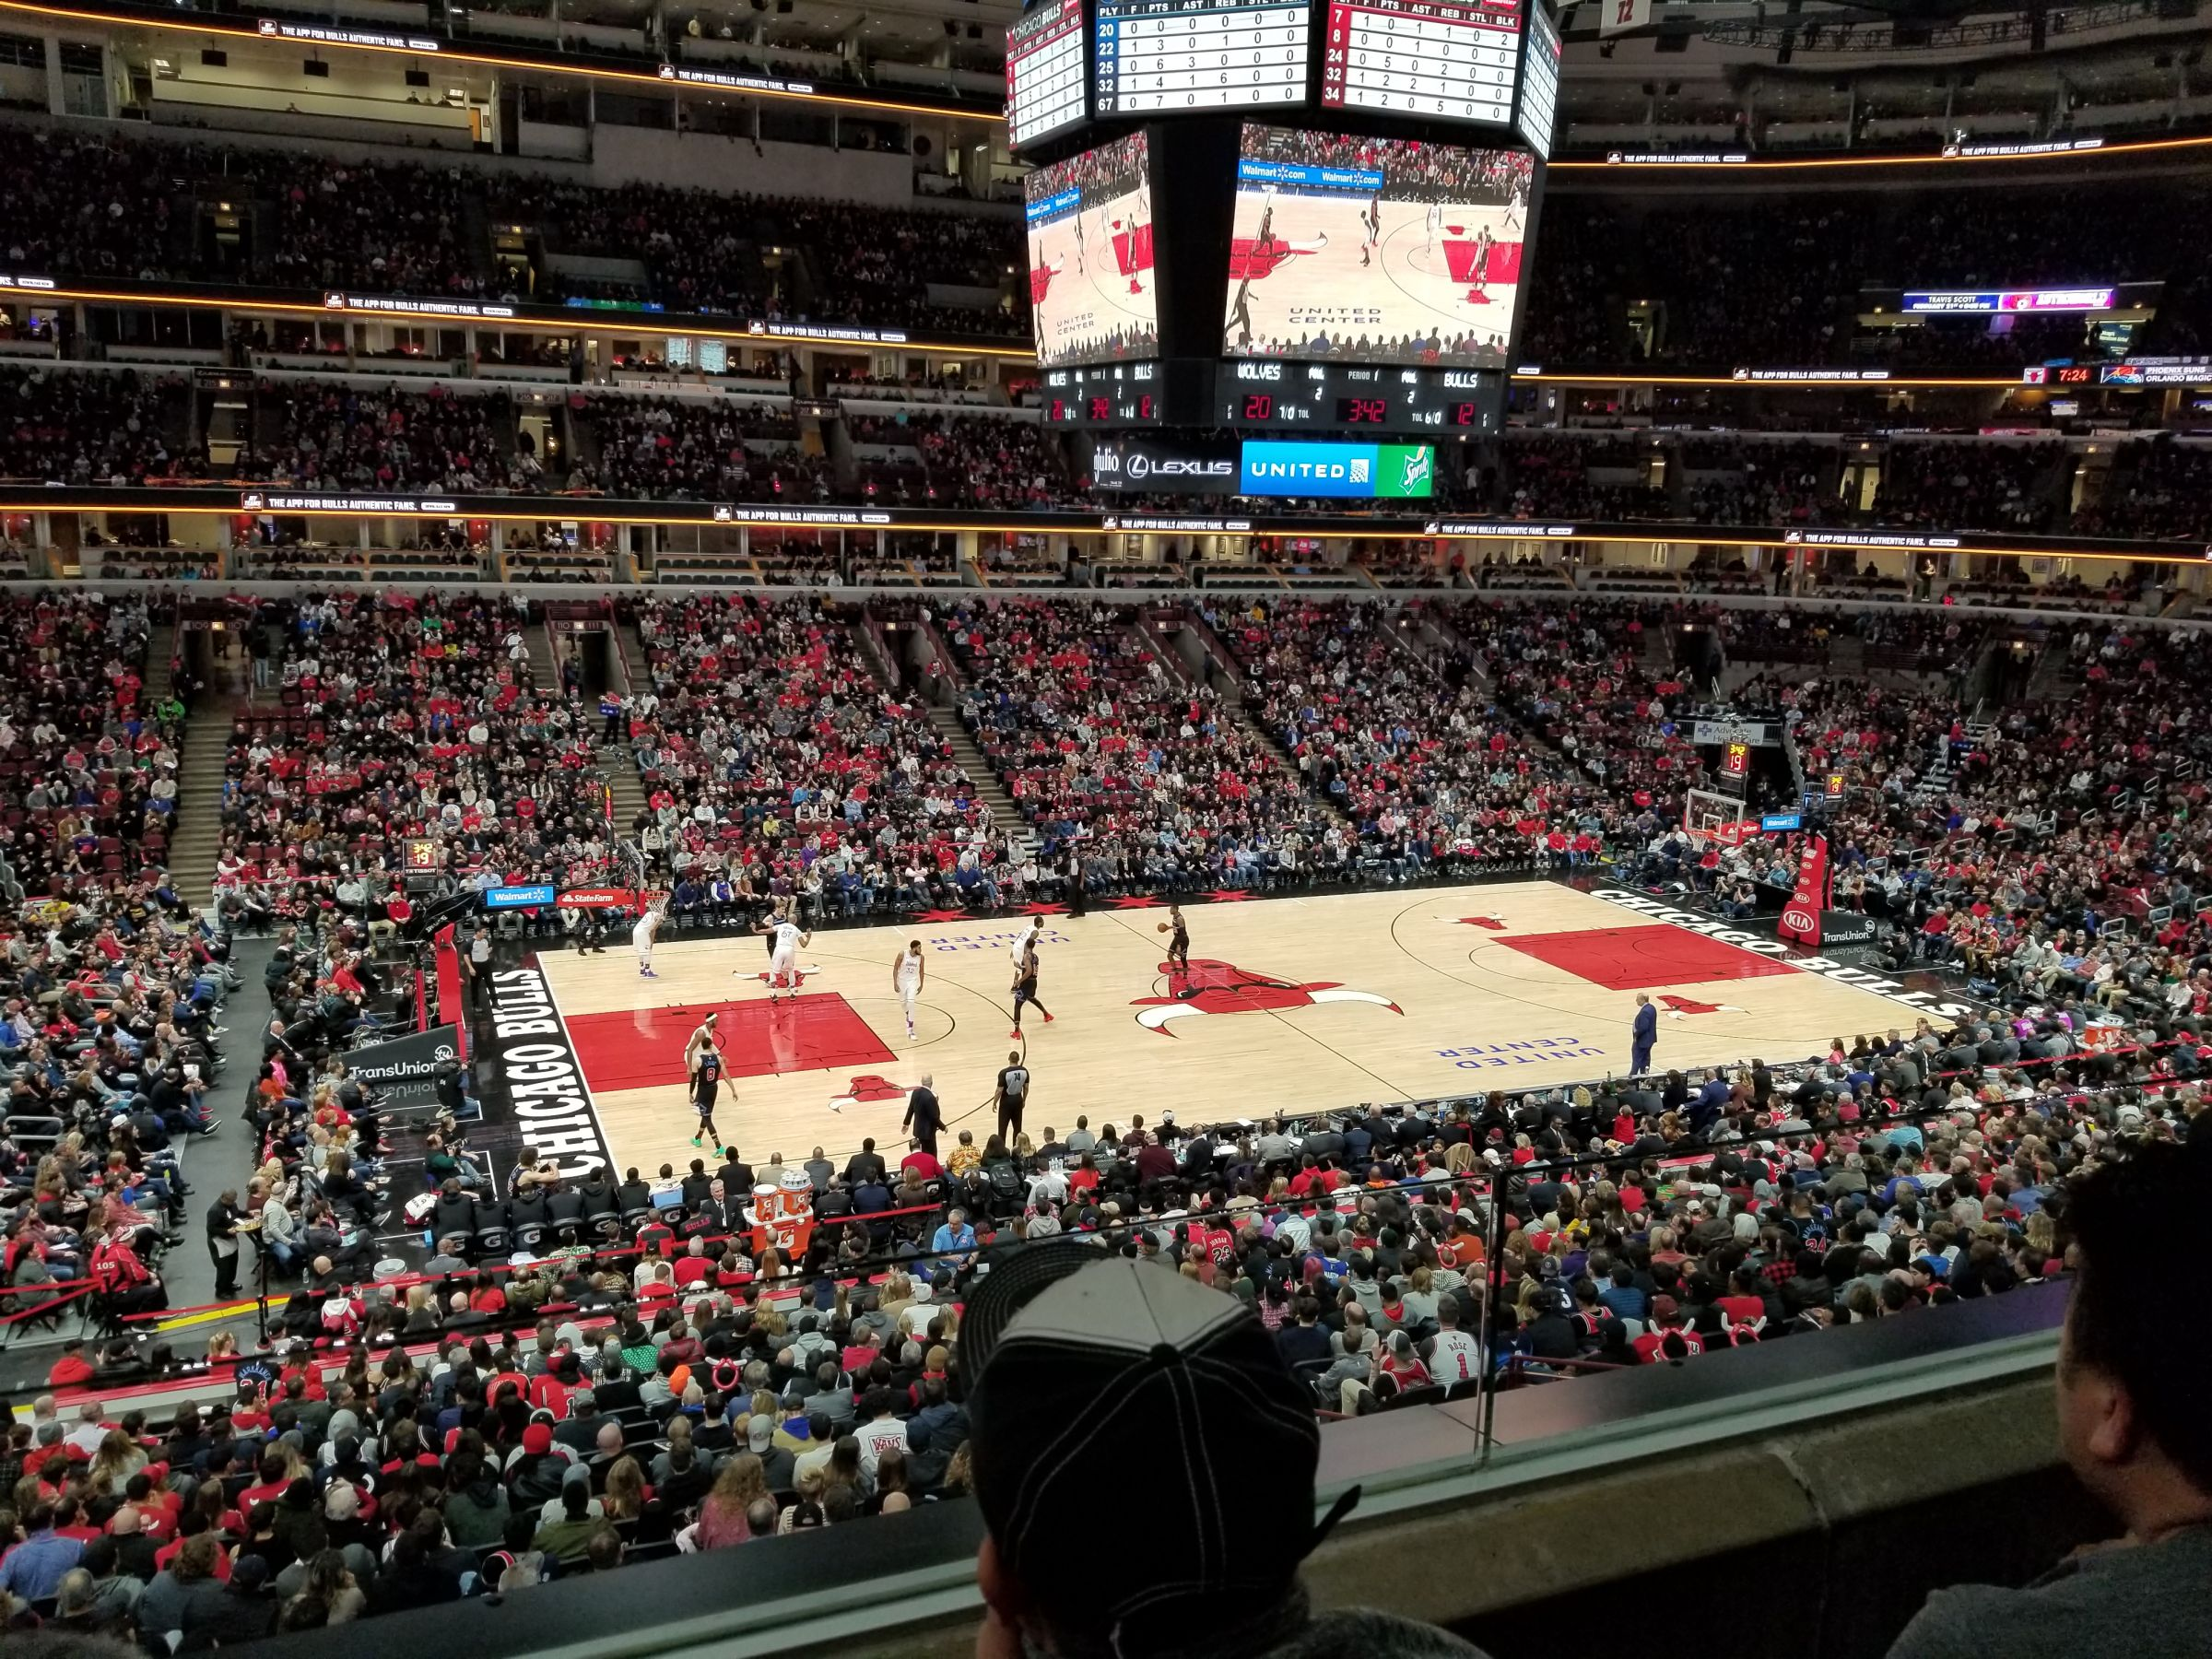 Chicago Bulls Seat View for United Center Section 202, Row 2, Seat 12